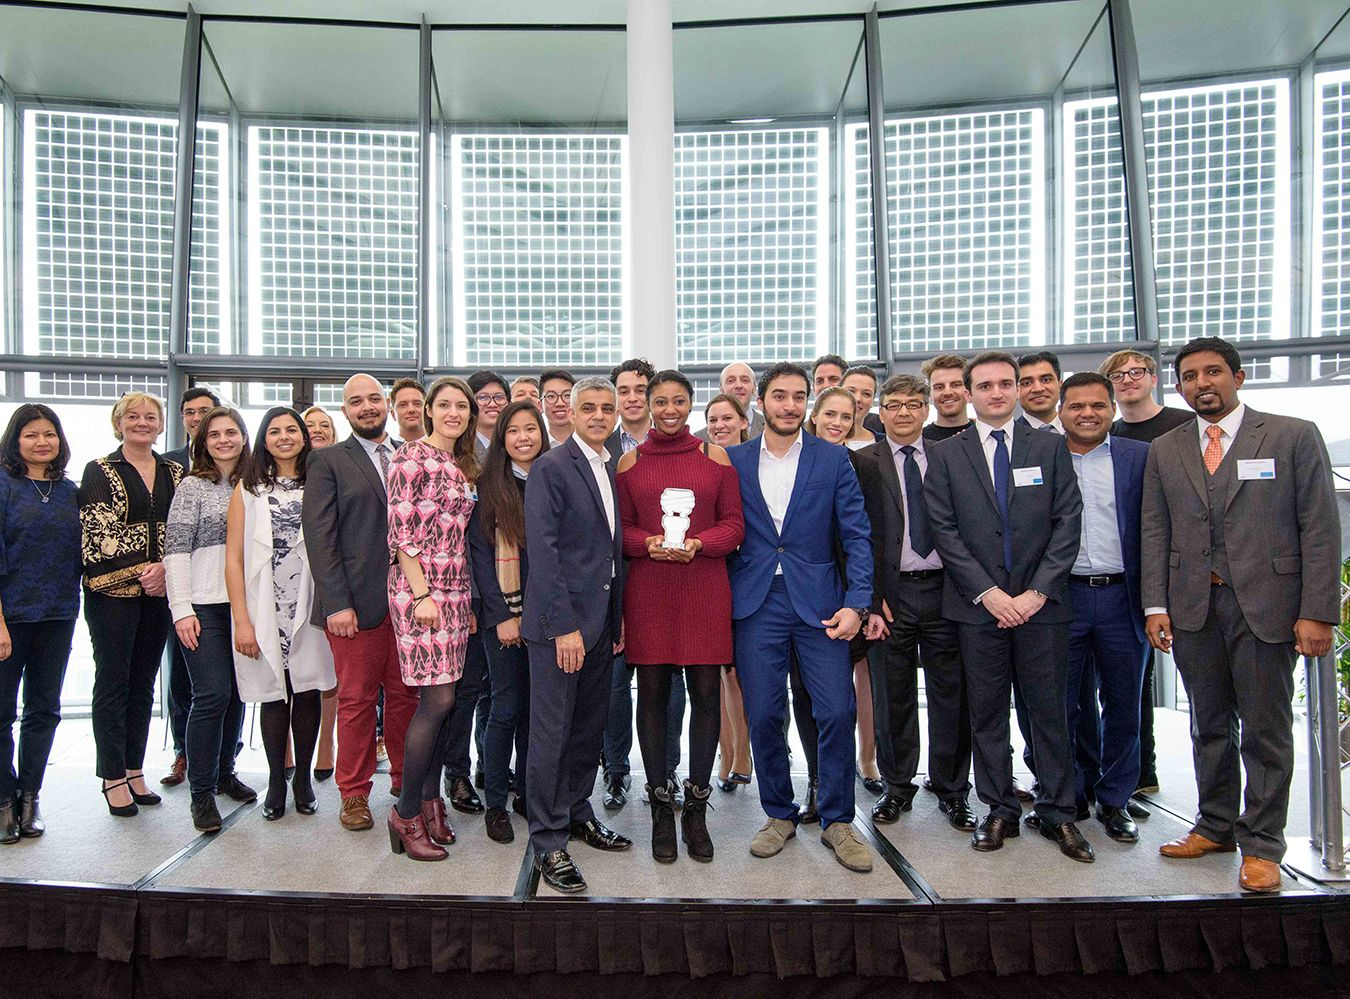 Mayor\\\'s Entrepreneur contestants stand in a group with Sadiq Khan and winner stands in the middle holding trophy